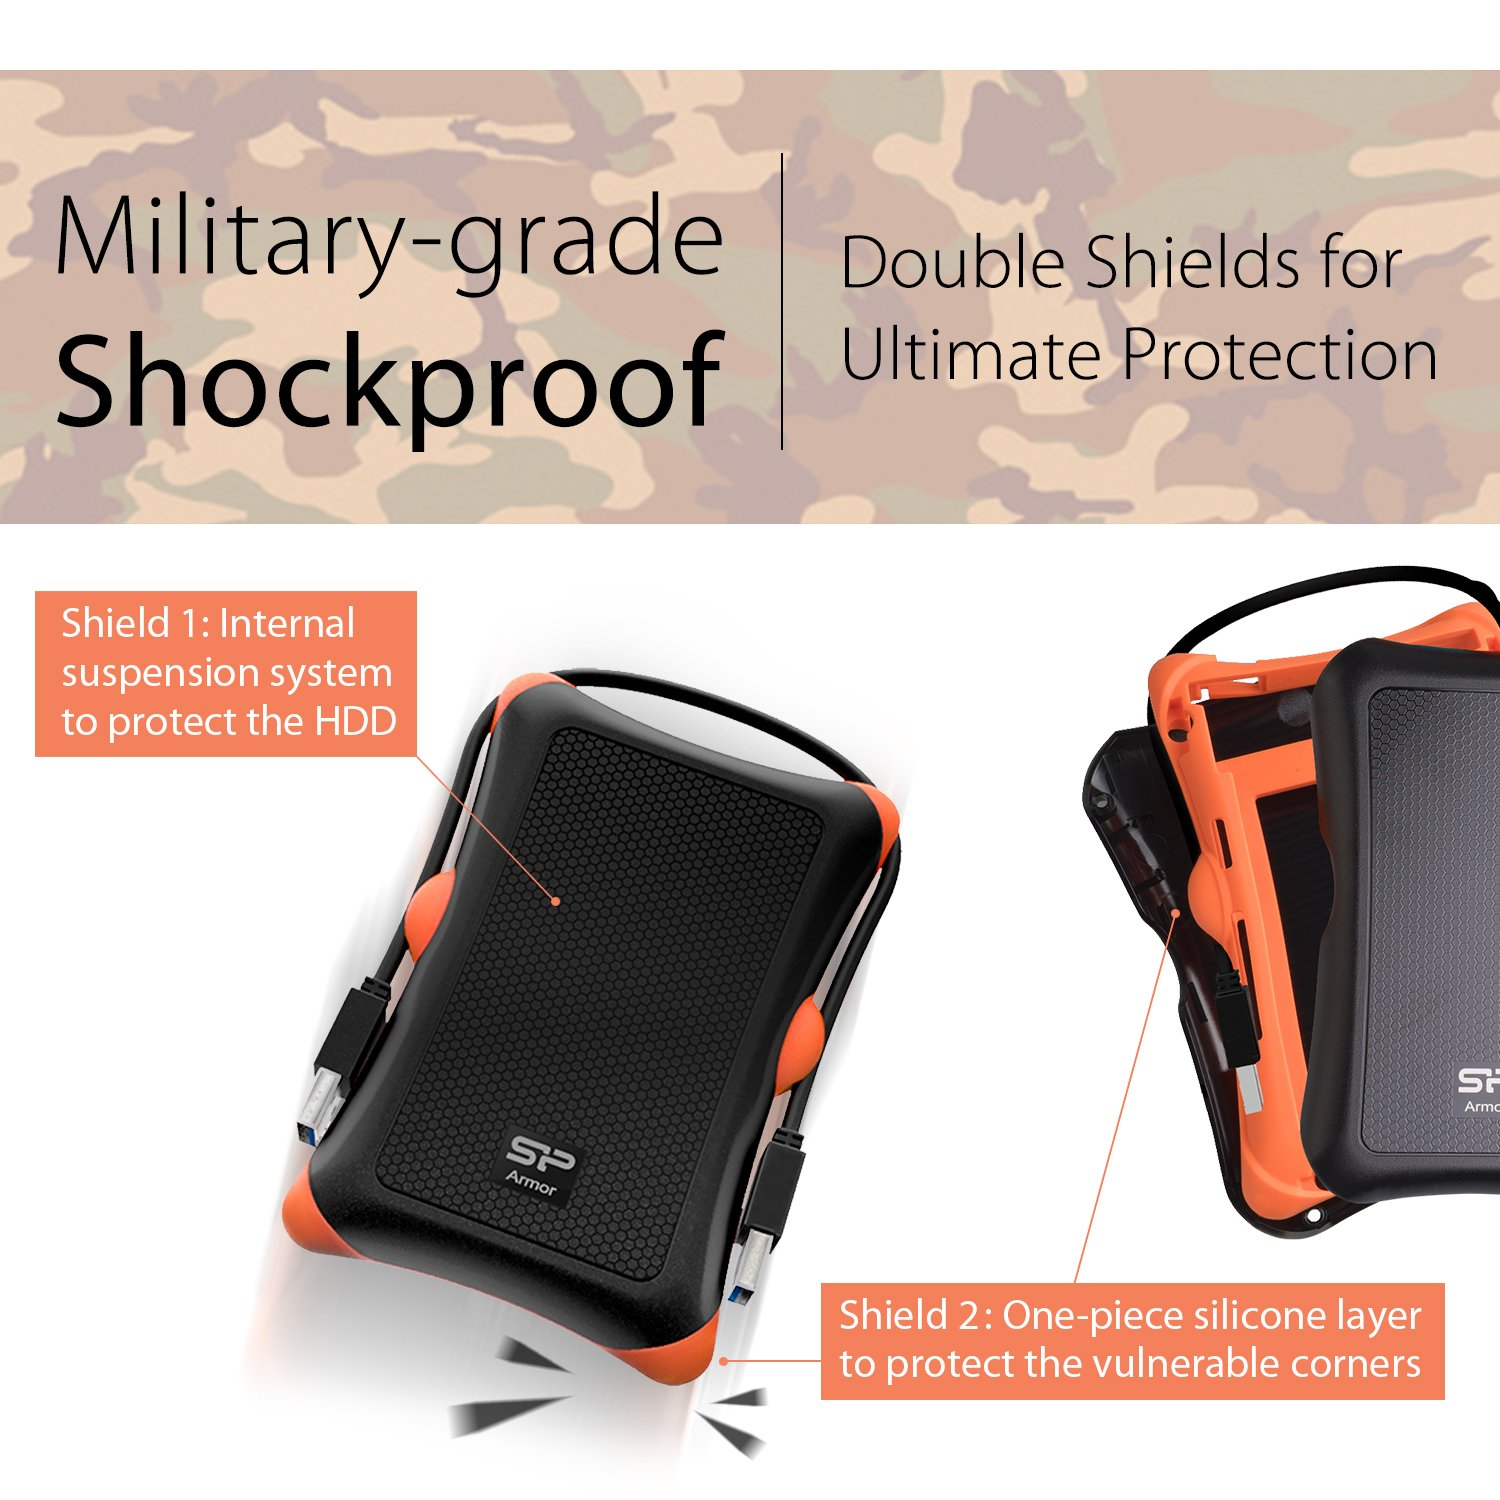 Silicon Power 2TB Rugged Portable External Hard Drive Armor A30, Shockproof USB 3.0 for PC, Mac, Xbox and PS4, Black by Silicon Power (Image #2)